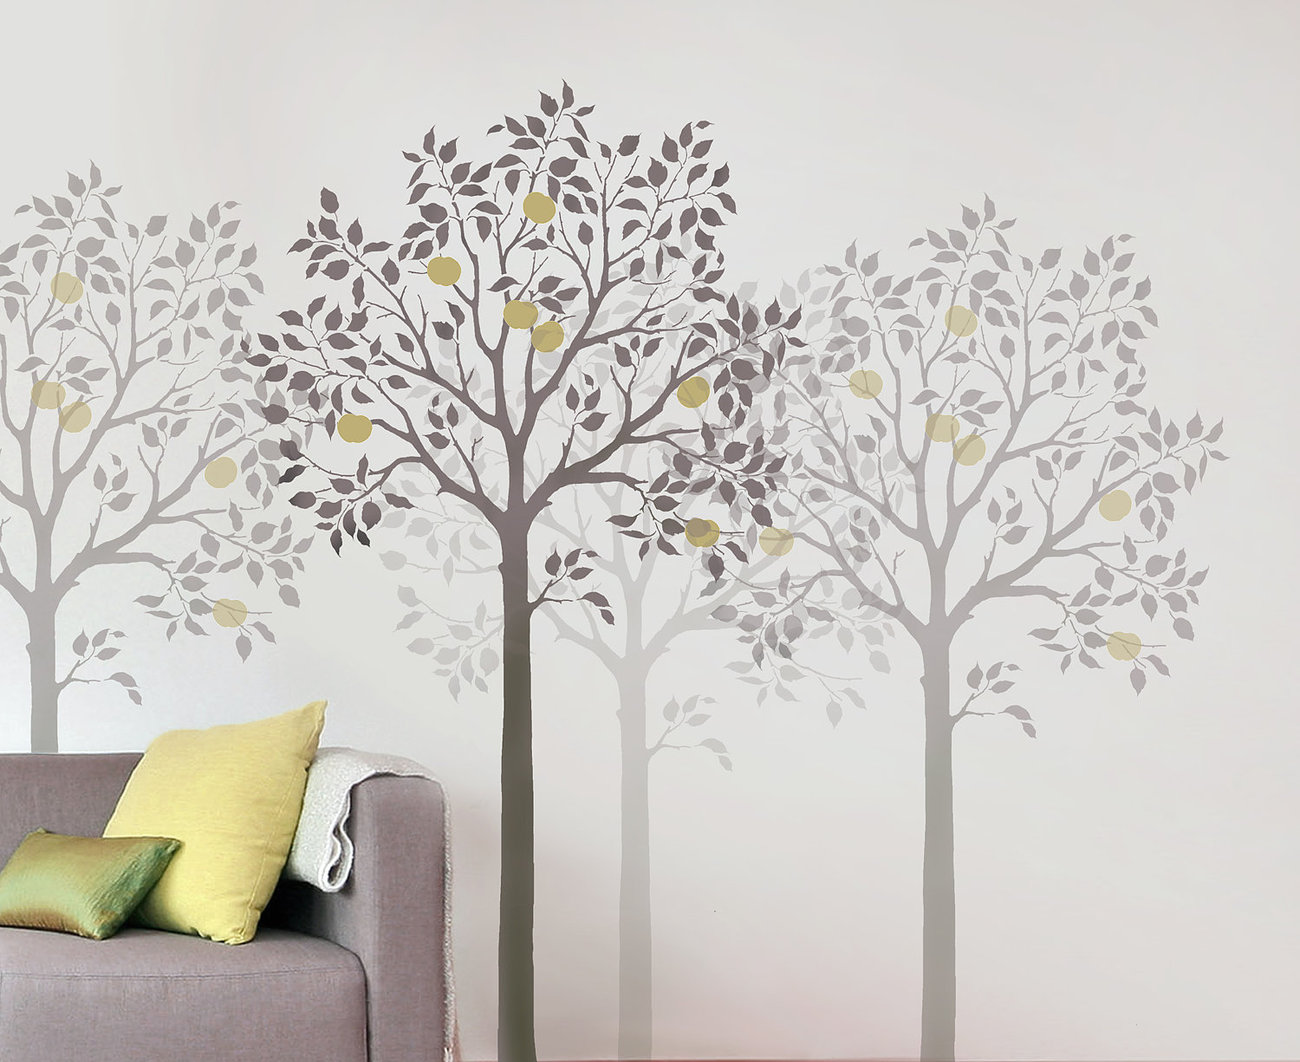 Stencil Design Wall Decor : Large fruit tree stencil easy reusable wall stencils for